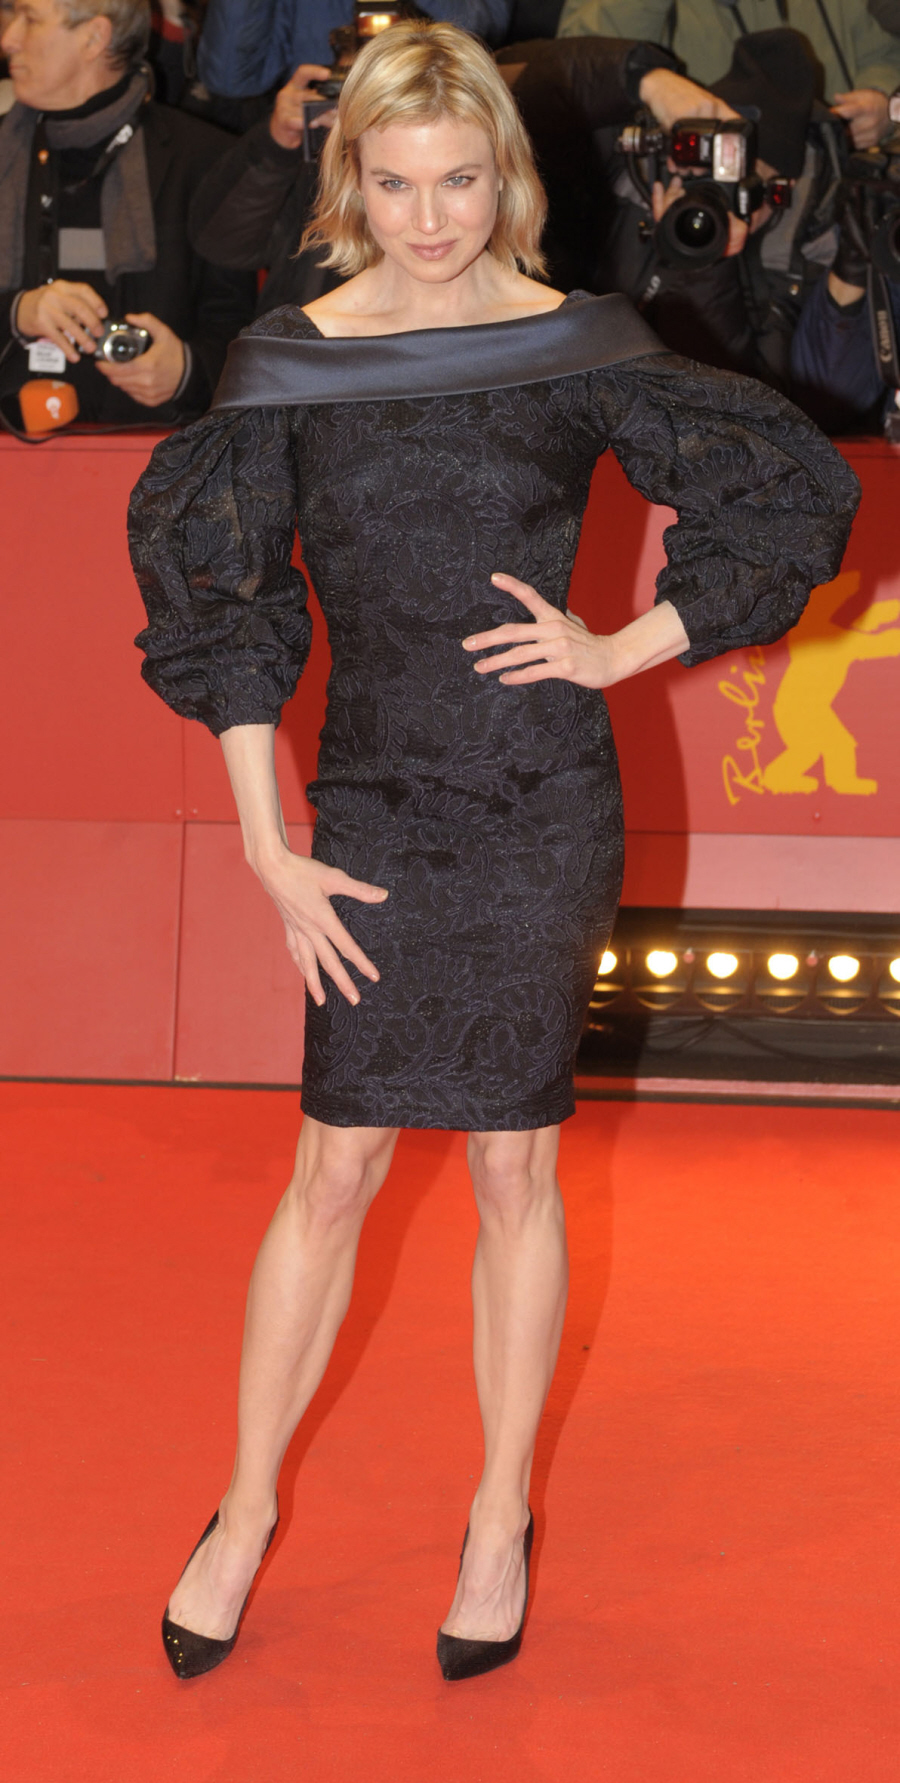 berlinale_awards_010_wenn2747653